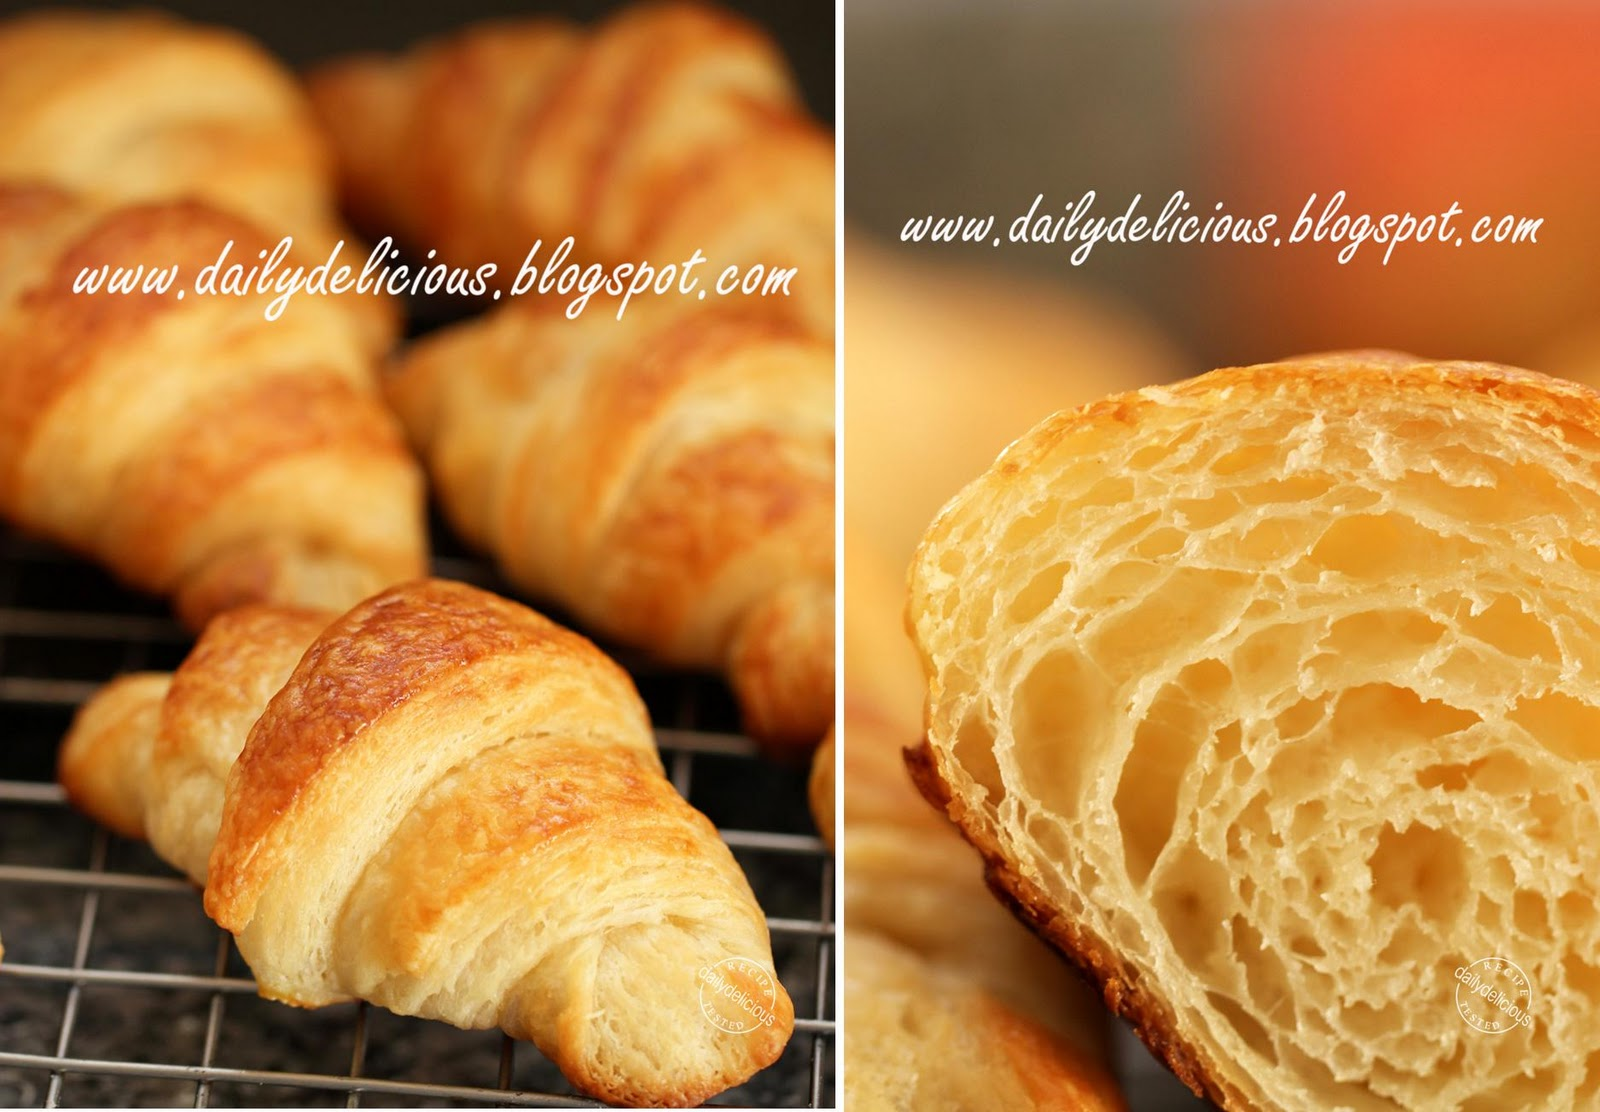 dailydelicious september 2011 daring bakers� challenge